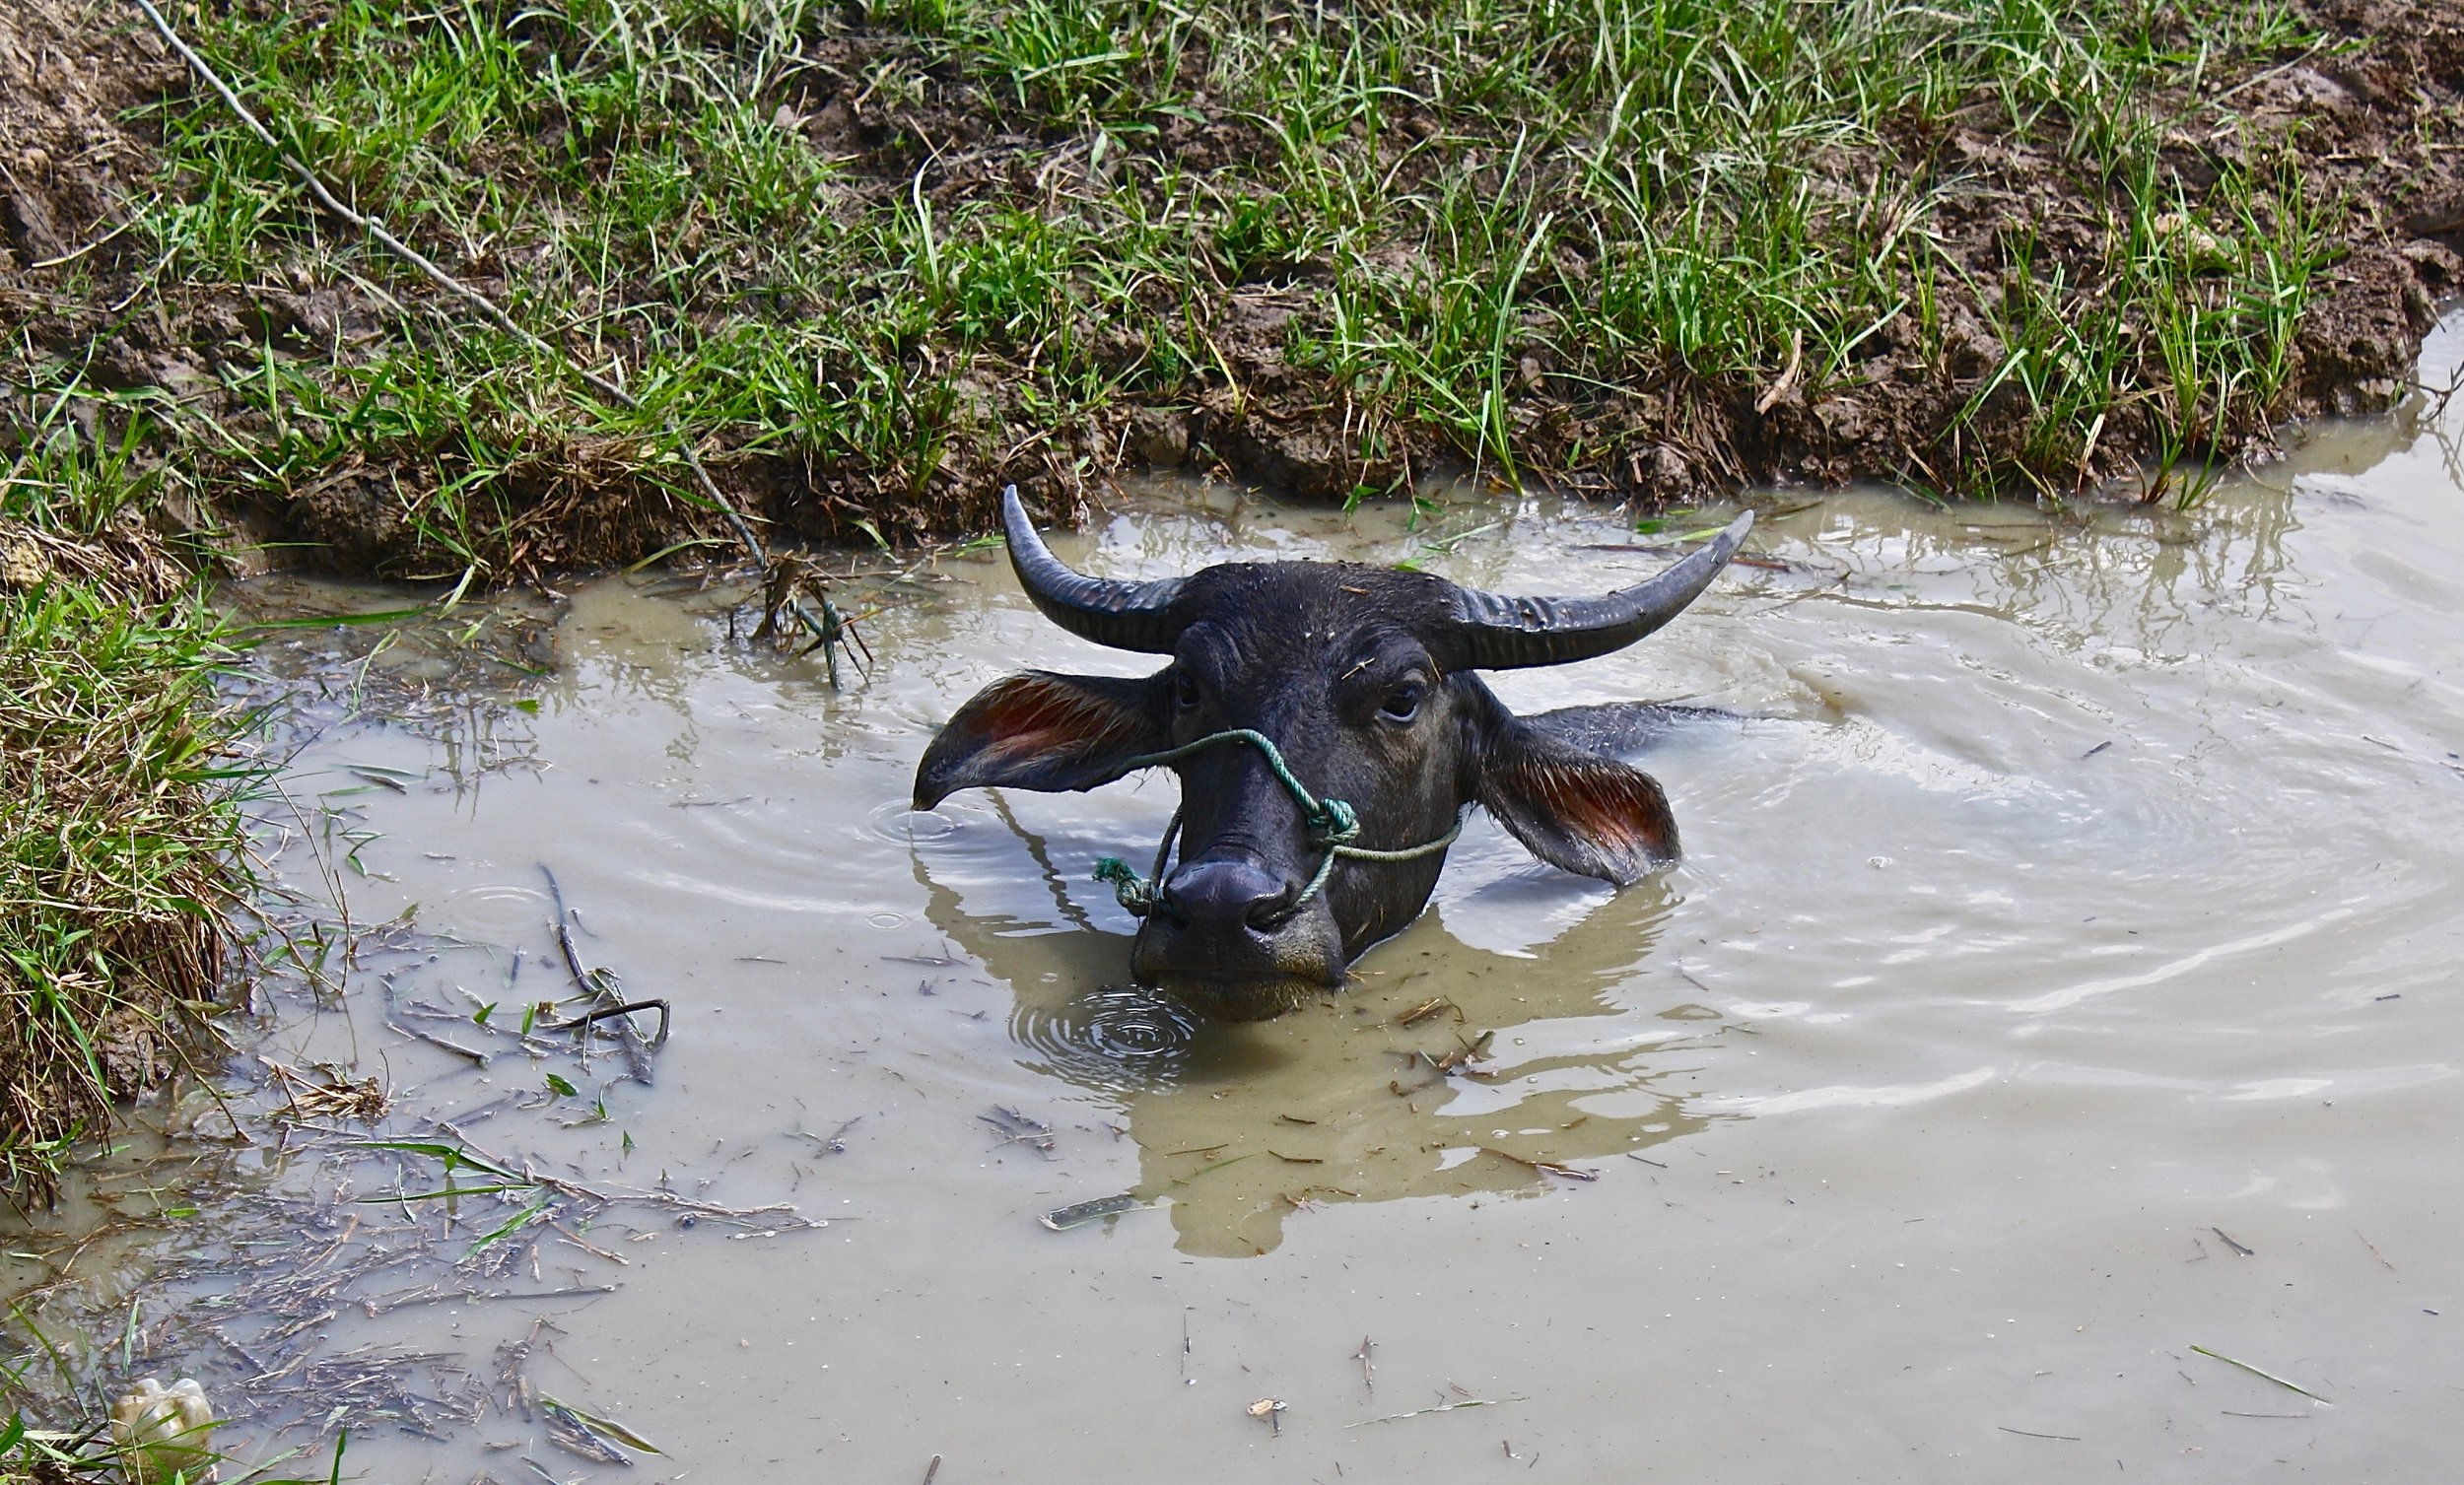 A water buffalo submerged in water on a 109F (43C) day in central Myanmar.